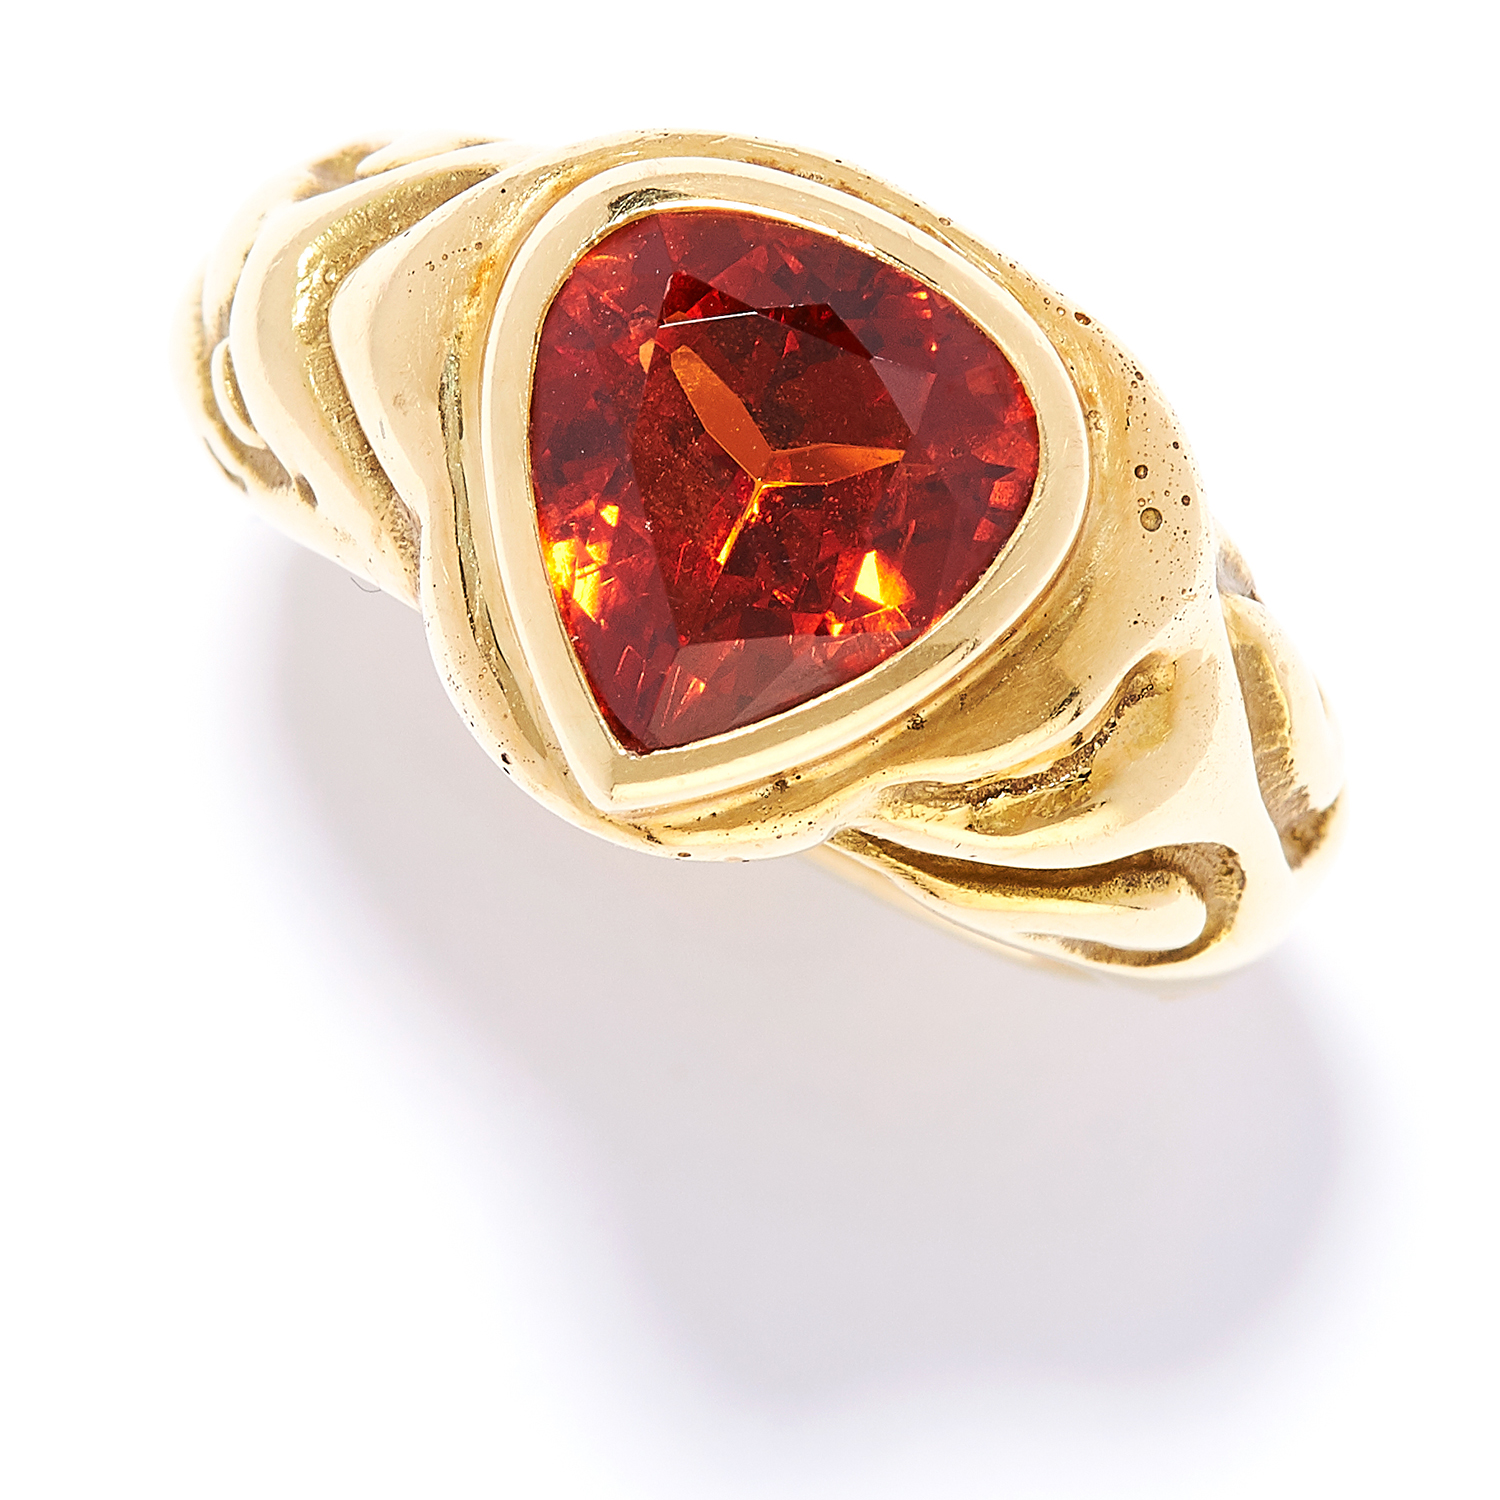 SPESSARTITE GARNET DRESS RING, ELIZABETH GAGE, 1989 in 18ct yellow gold, set with a pear cut